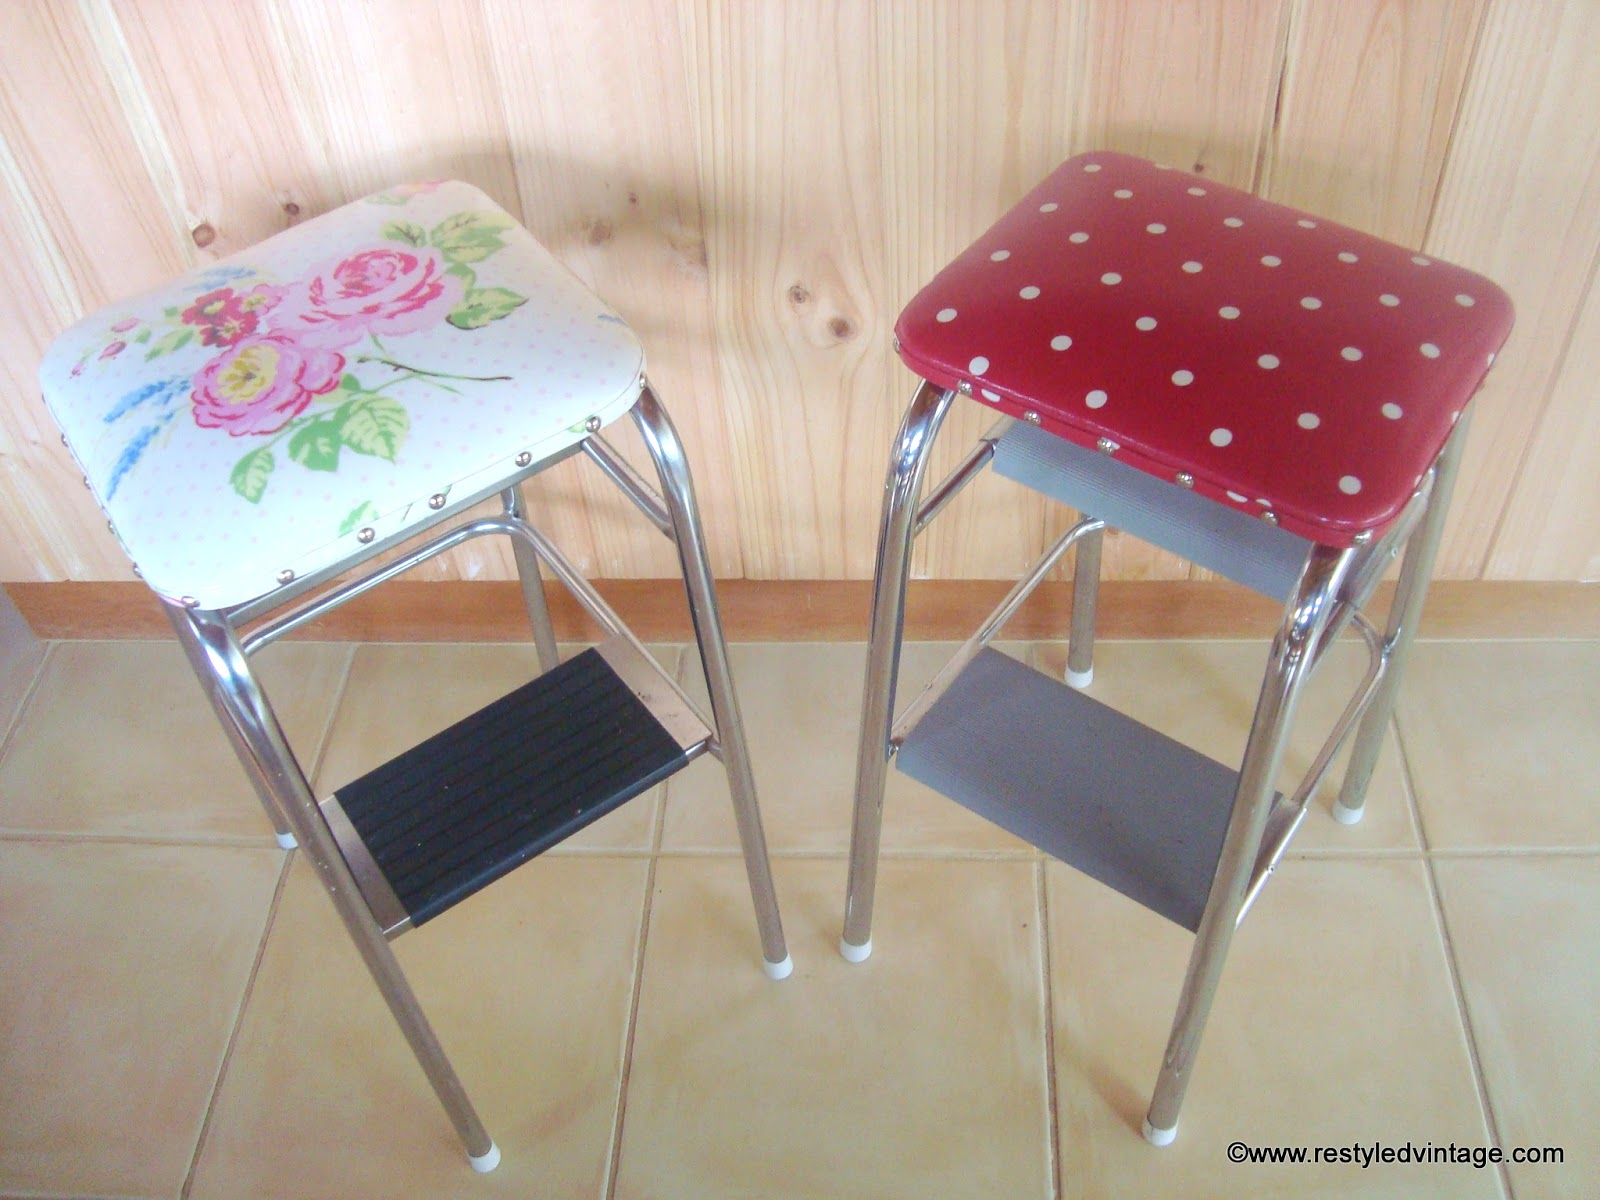 Old Fashioned Kitchen Chair Step Stool Portable Ventilation Fan For Restyled Vintage Retro Makeover